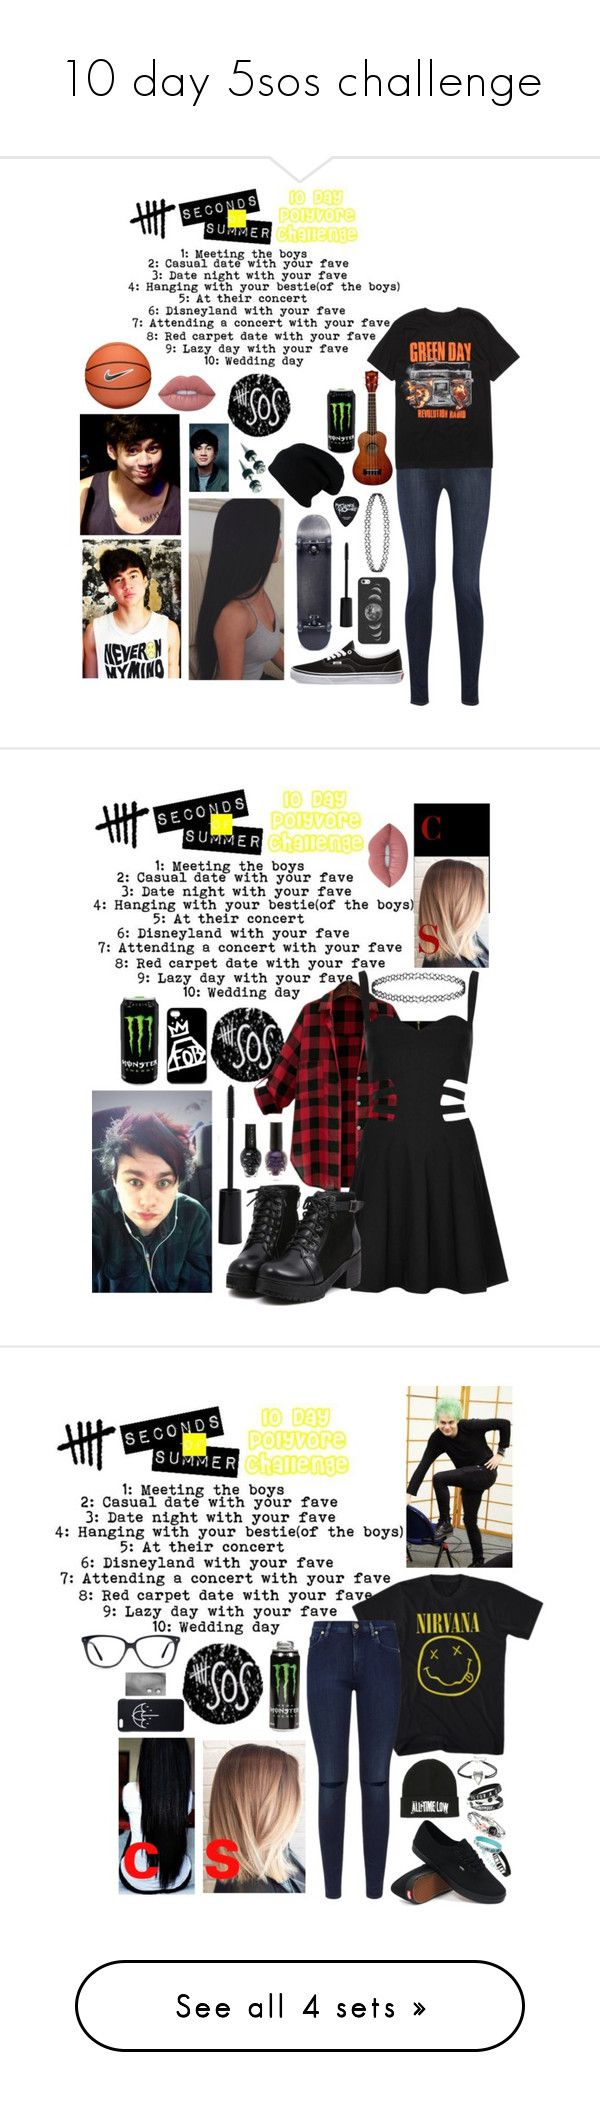 """""""10 day 5sos challenge"""" by xxghostlygracexx ❤ liked on Polyvore featuring Vans, J Brand, Hot Topic, Casetify, Smashbox, NIKE, Lime Crime, Rare London, Samsung and 7 For All Mankind"""